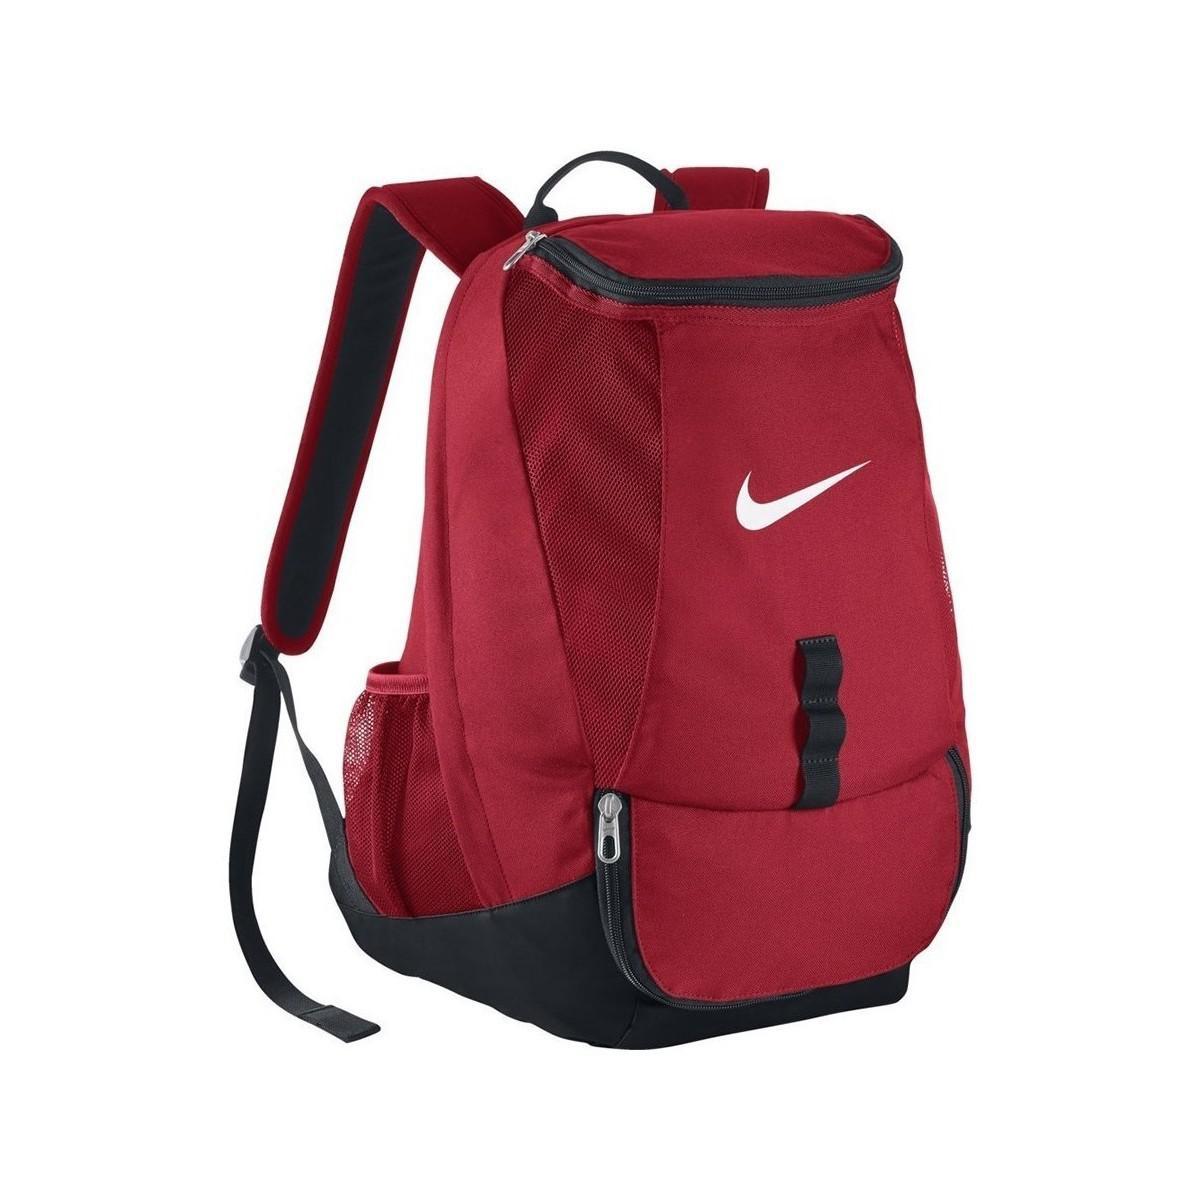 d19bbe15493d Nike Club Team Bkpk M Women s Backpack In Red in Red for Men - Lyst